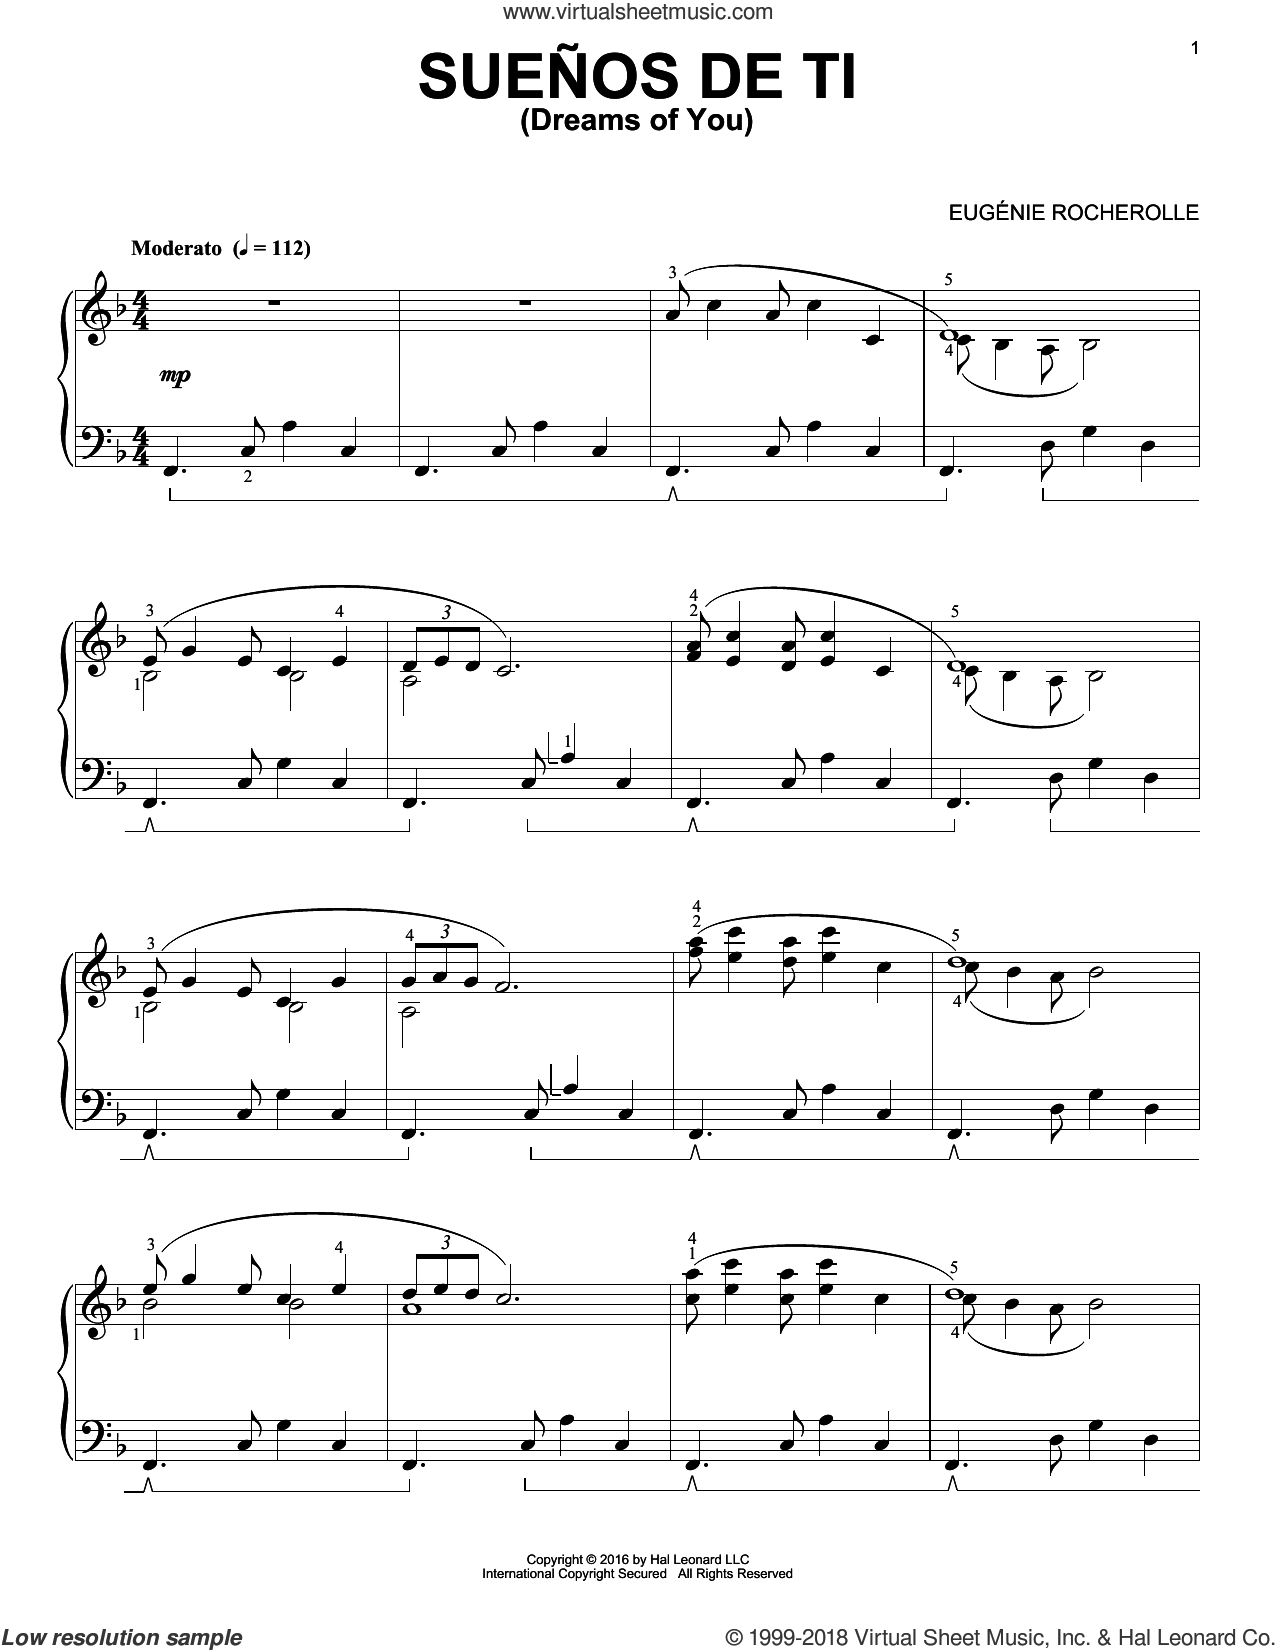 Suenos de Ti sheet music for piano solo by Eugenie Rocherolle, intermediate